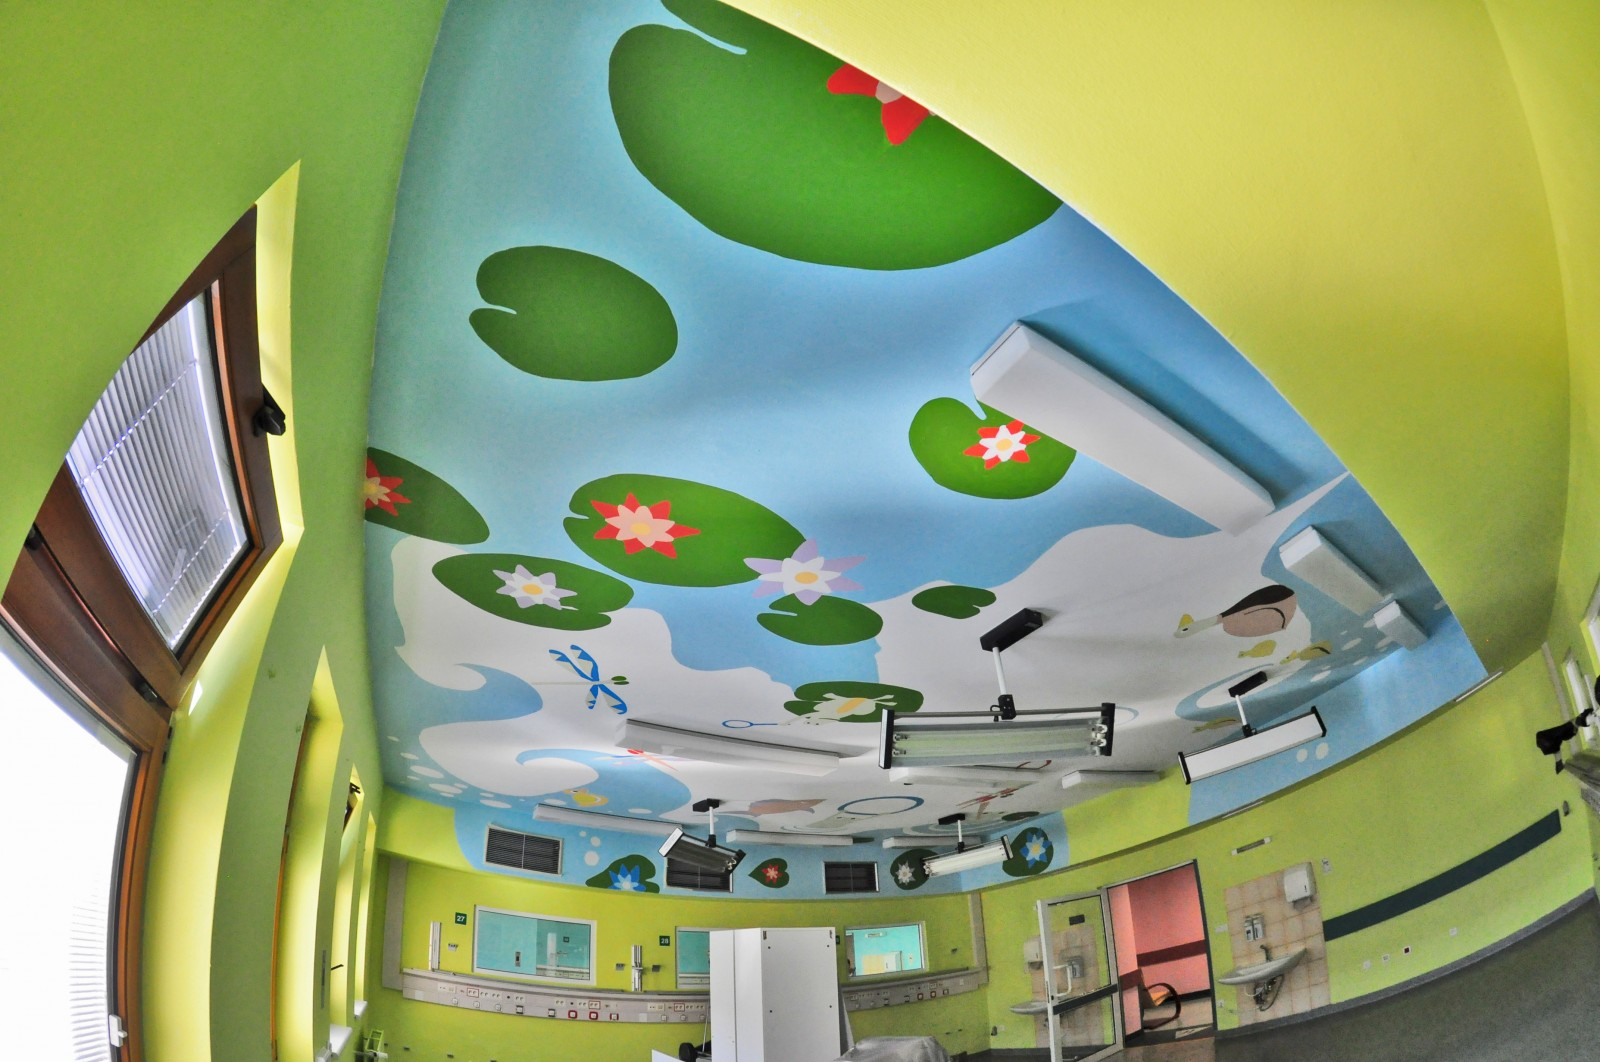 Repainted ceiling in The Children's Memorial Health Institute in Warsaw Ceiling Operation | Ceiling Operation - The Children's Memorial Health Institute | CSR | About us